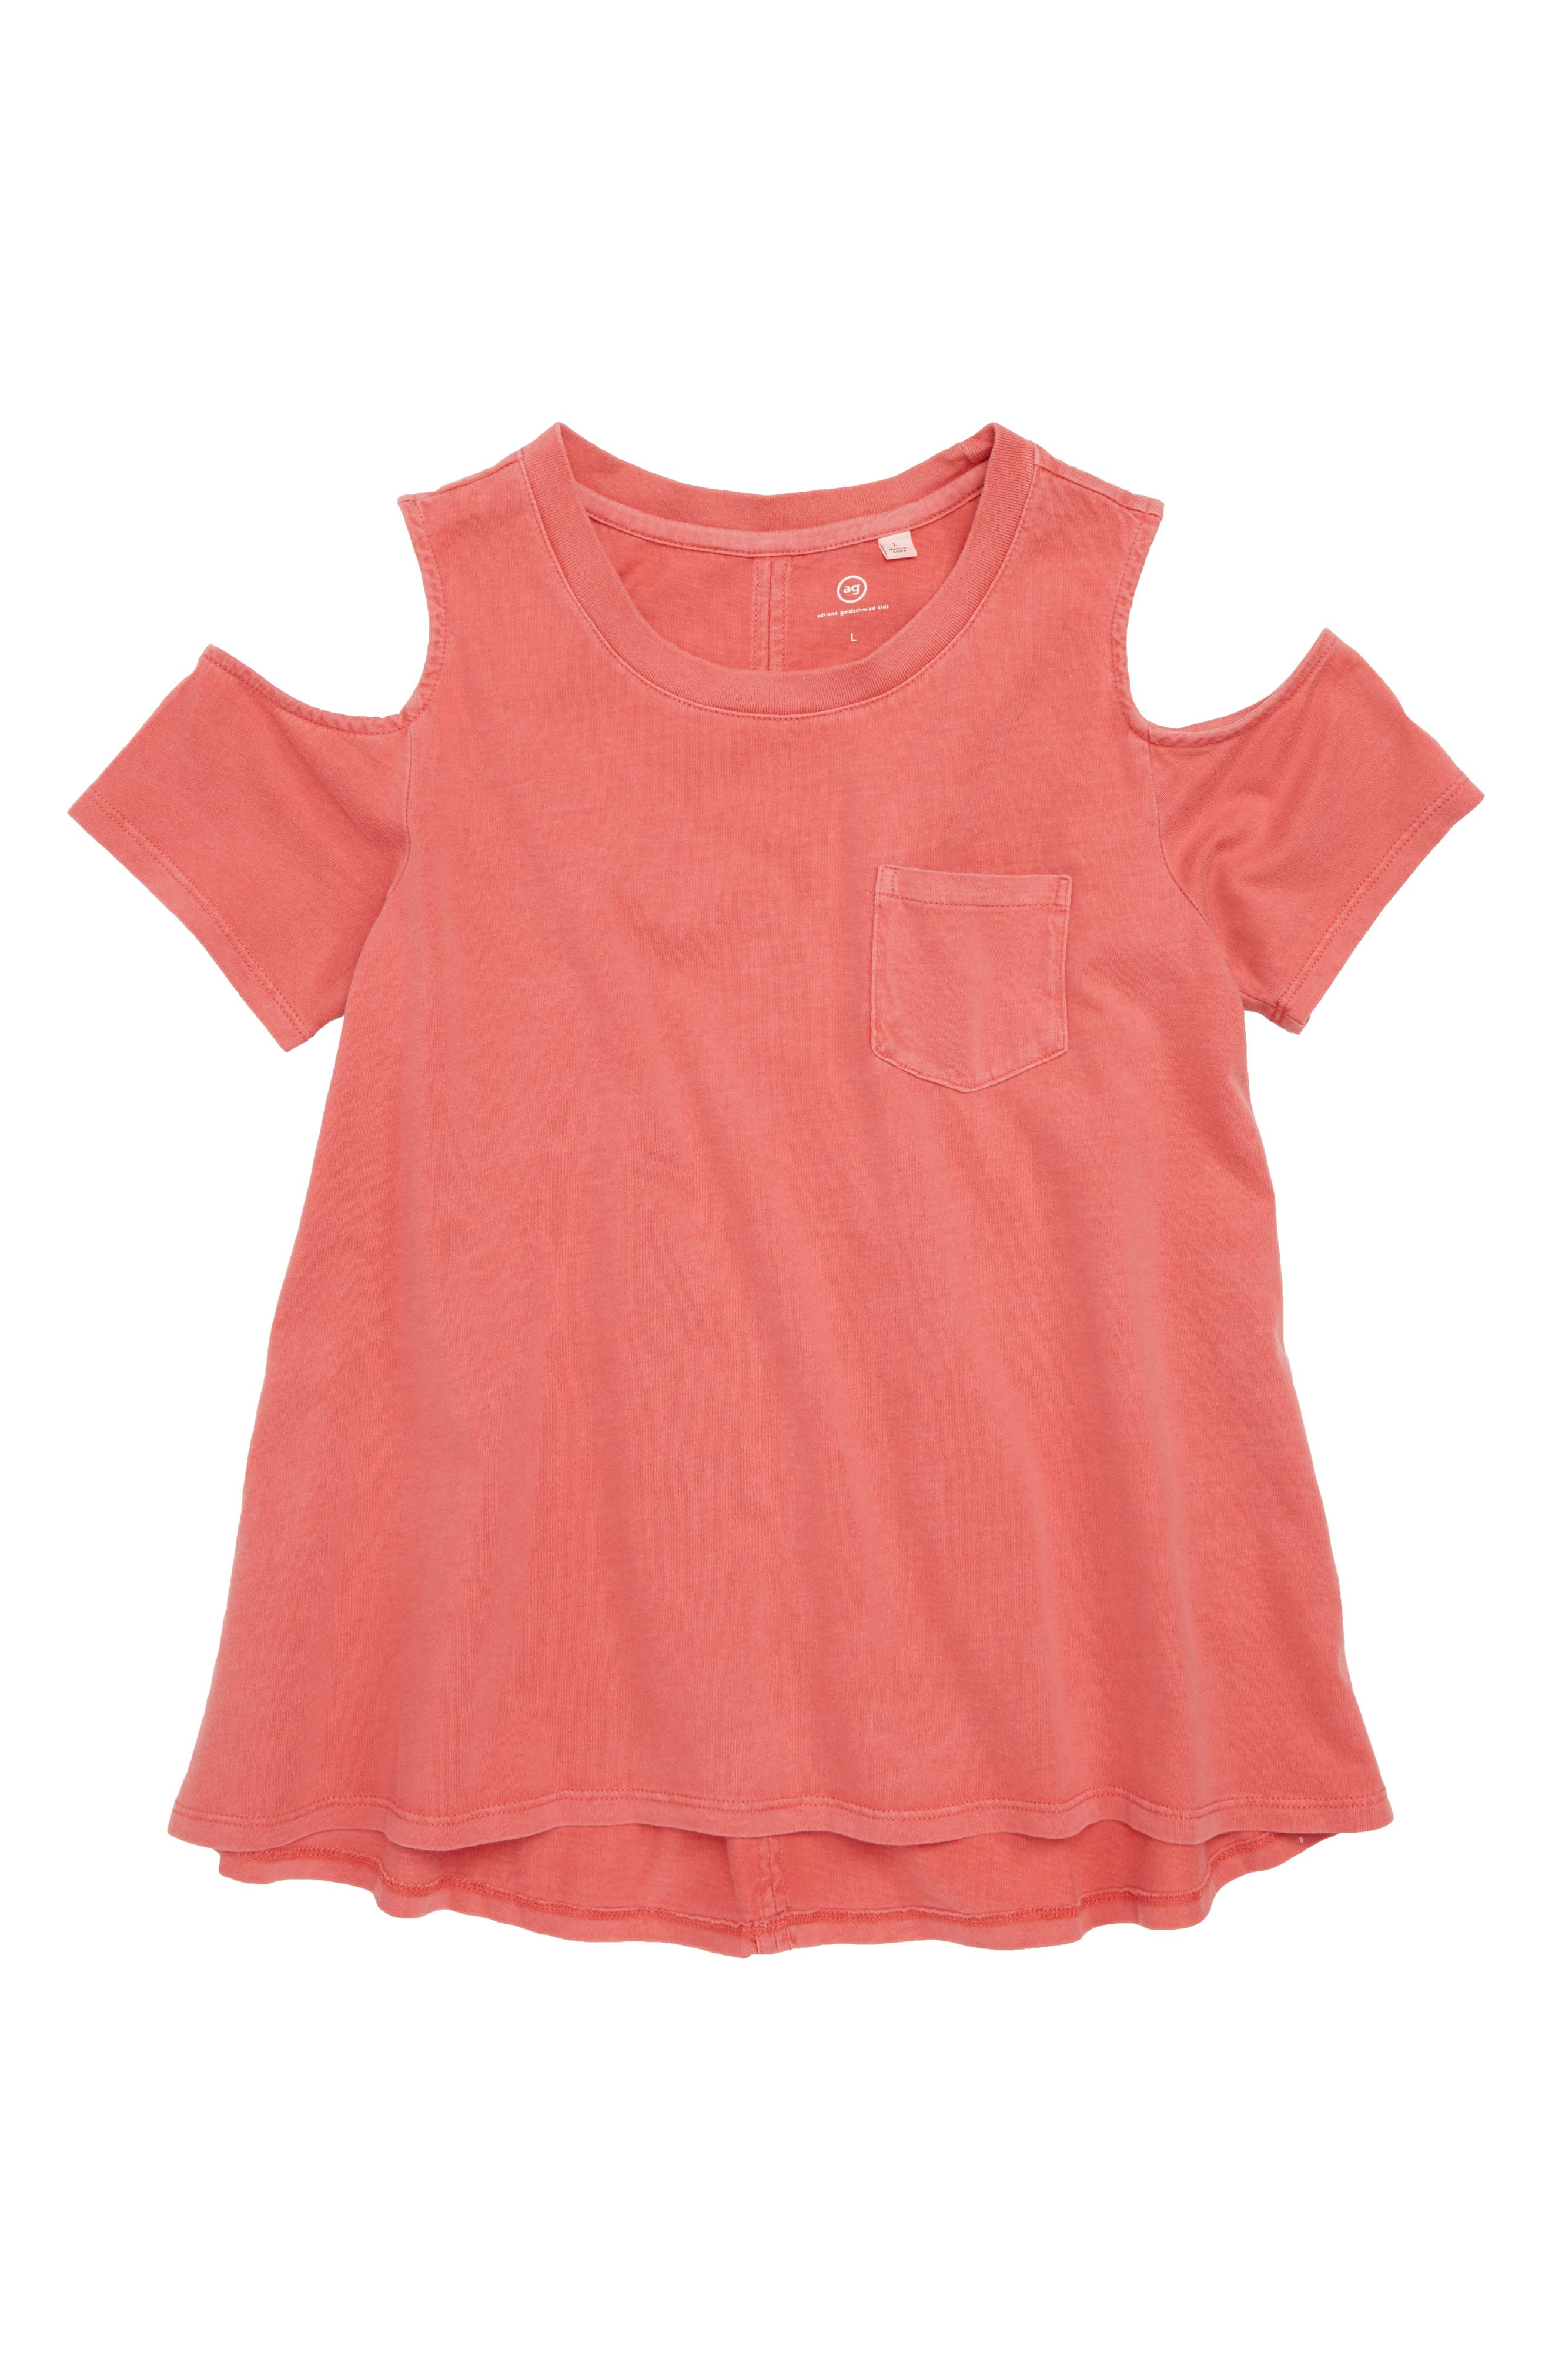 adriano goldschmied kids Tess Cold Shoulder Top,                             Main thumbnail 1, color,                             620